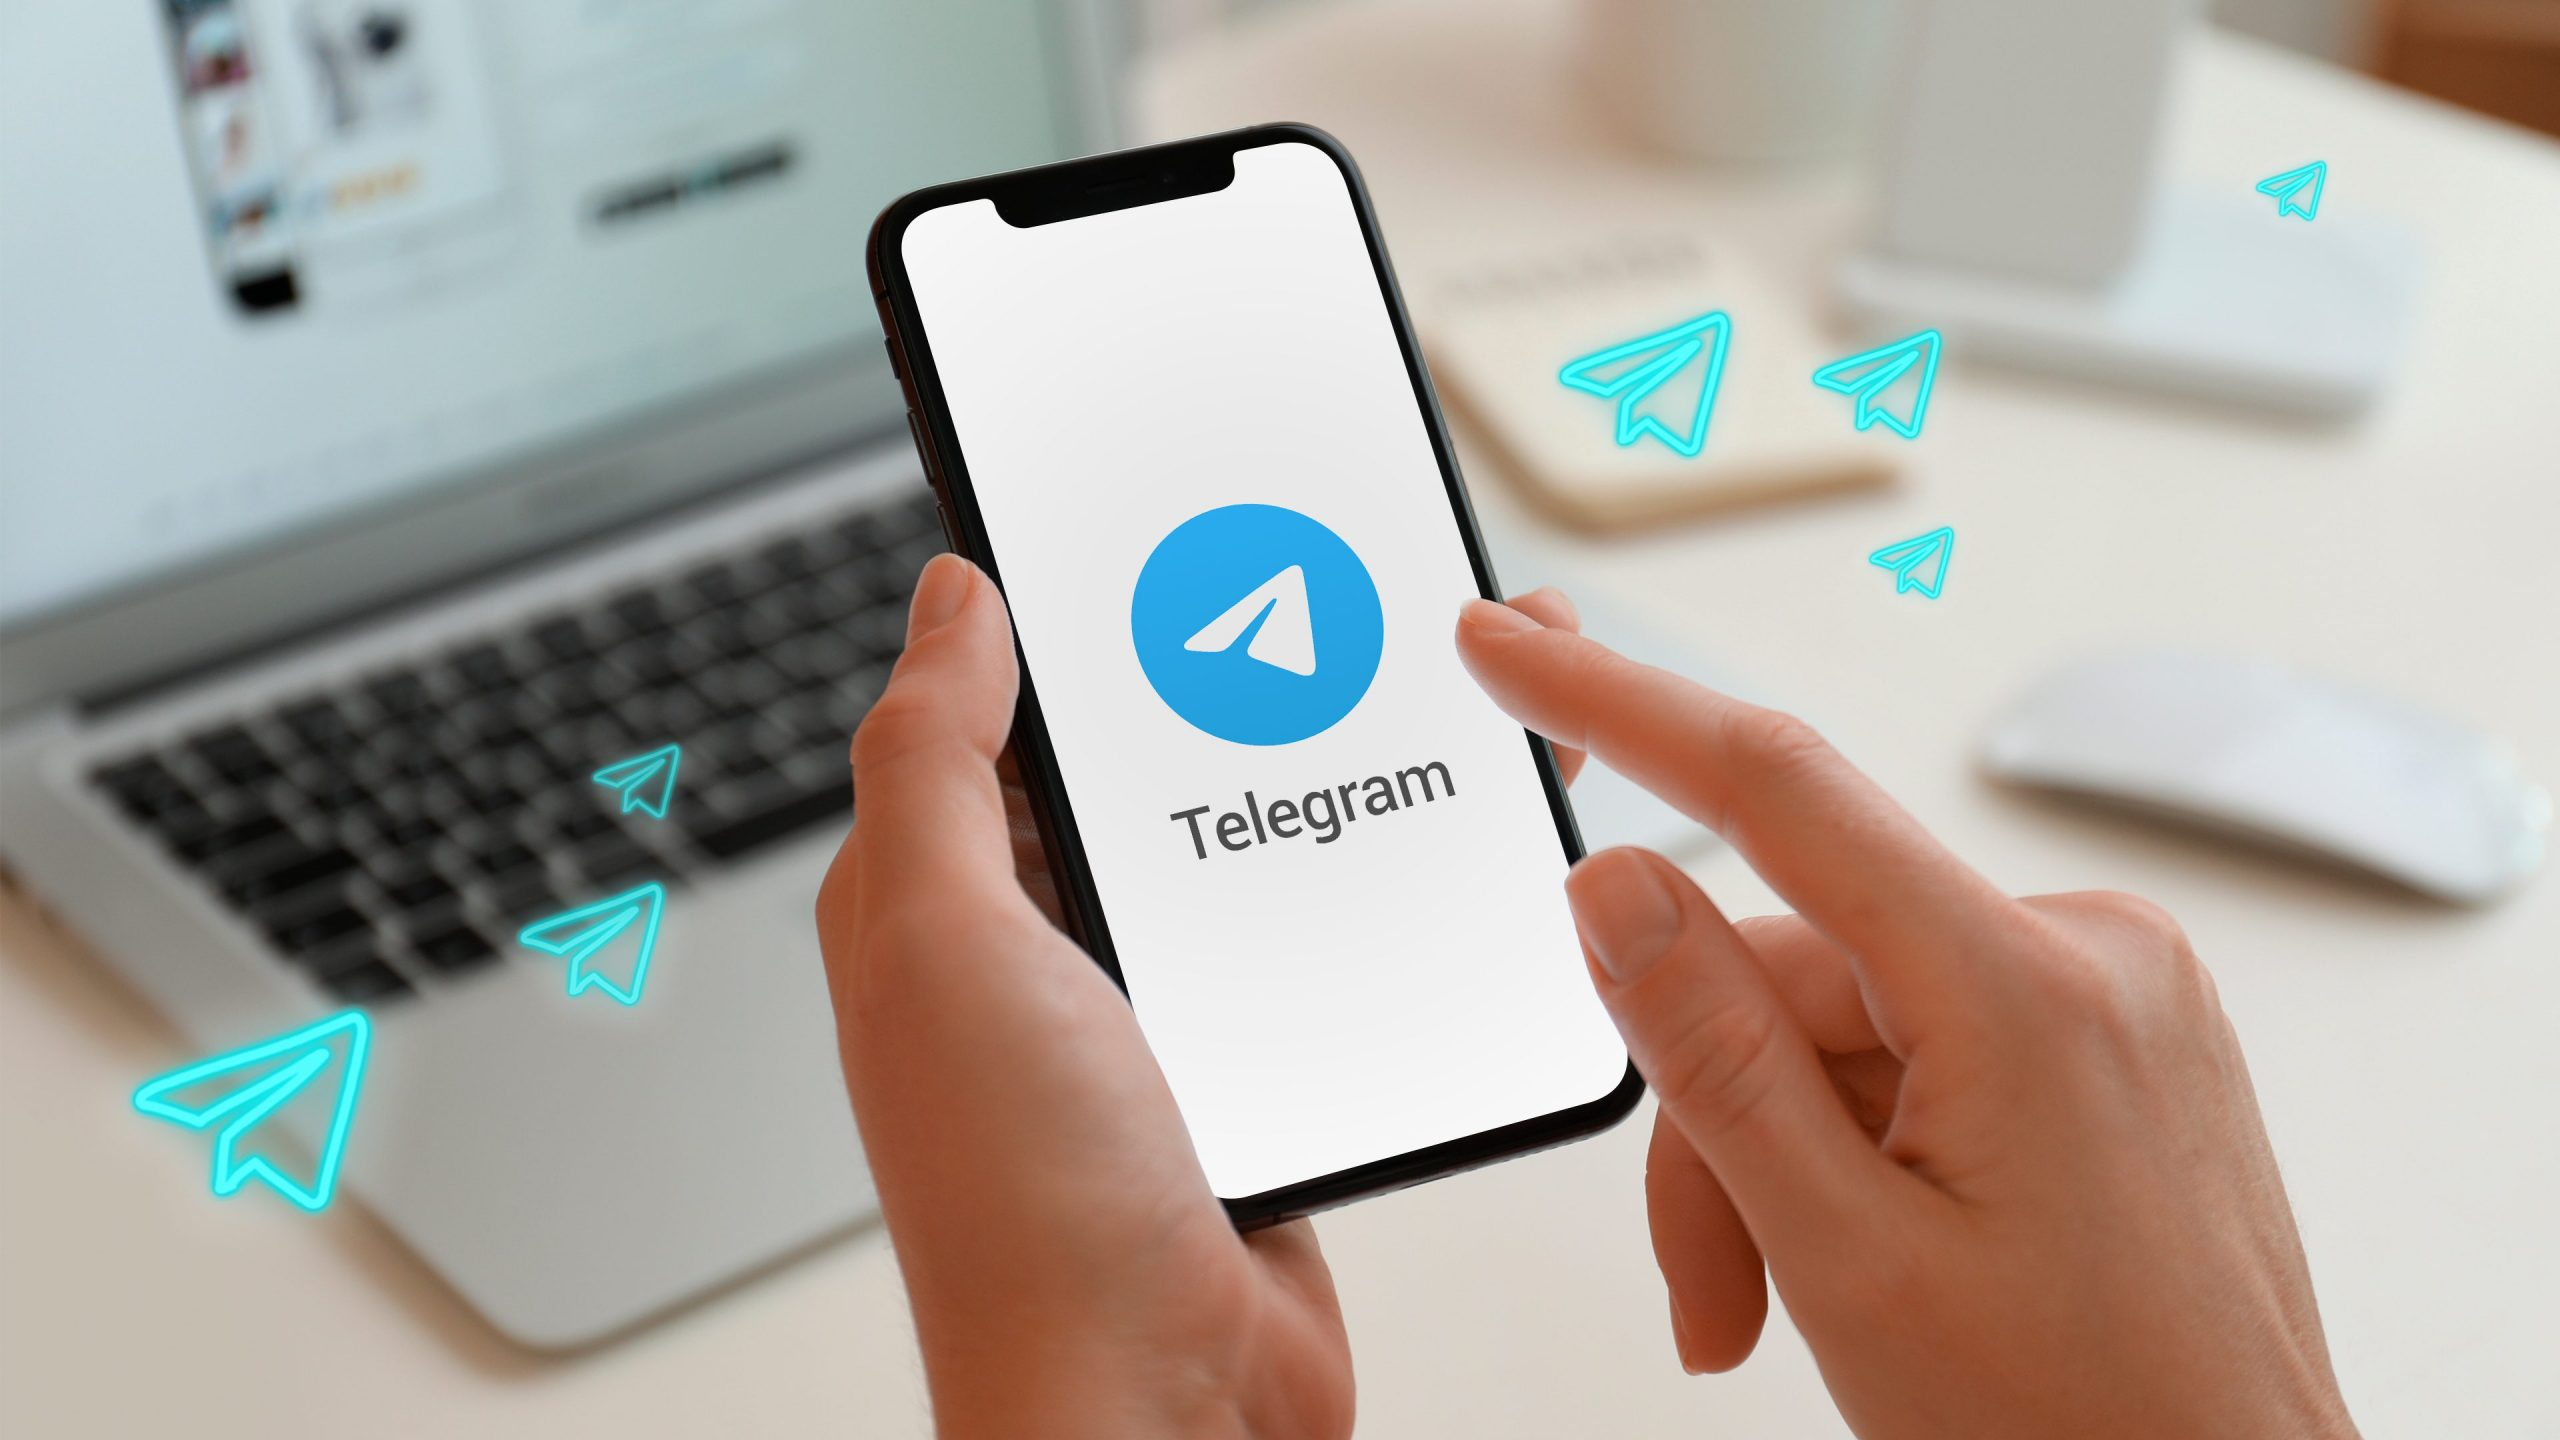 Facebook Outage: Telegram Now Fifth Most Downloaded App From 56th —Report